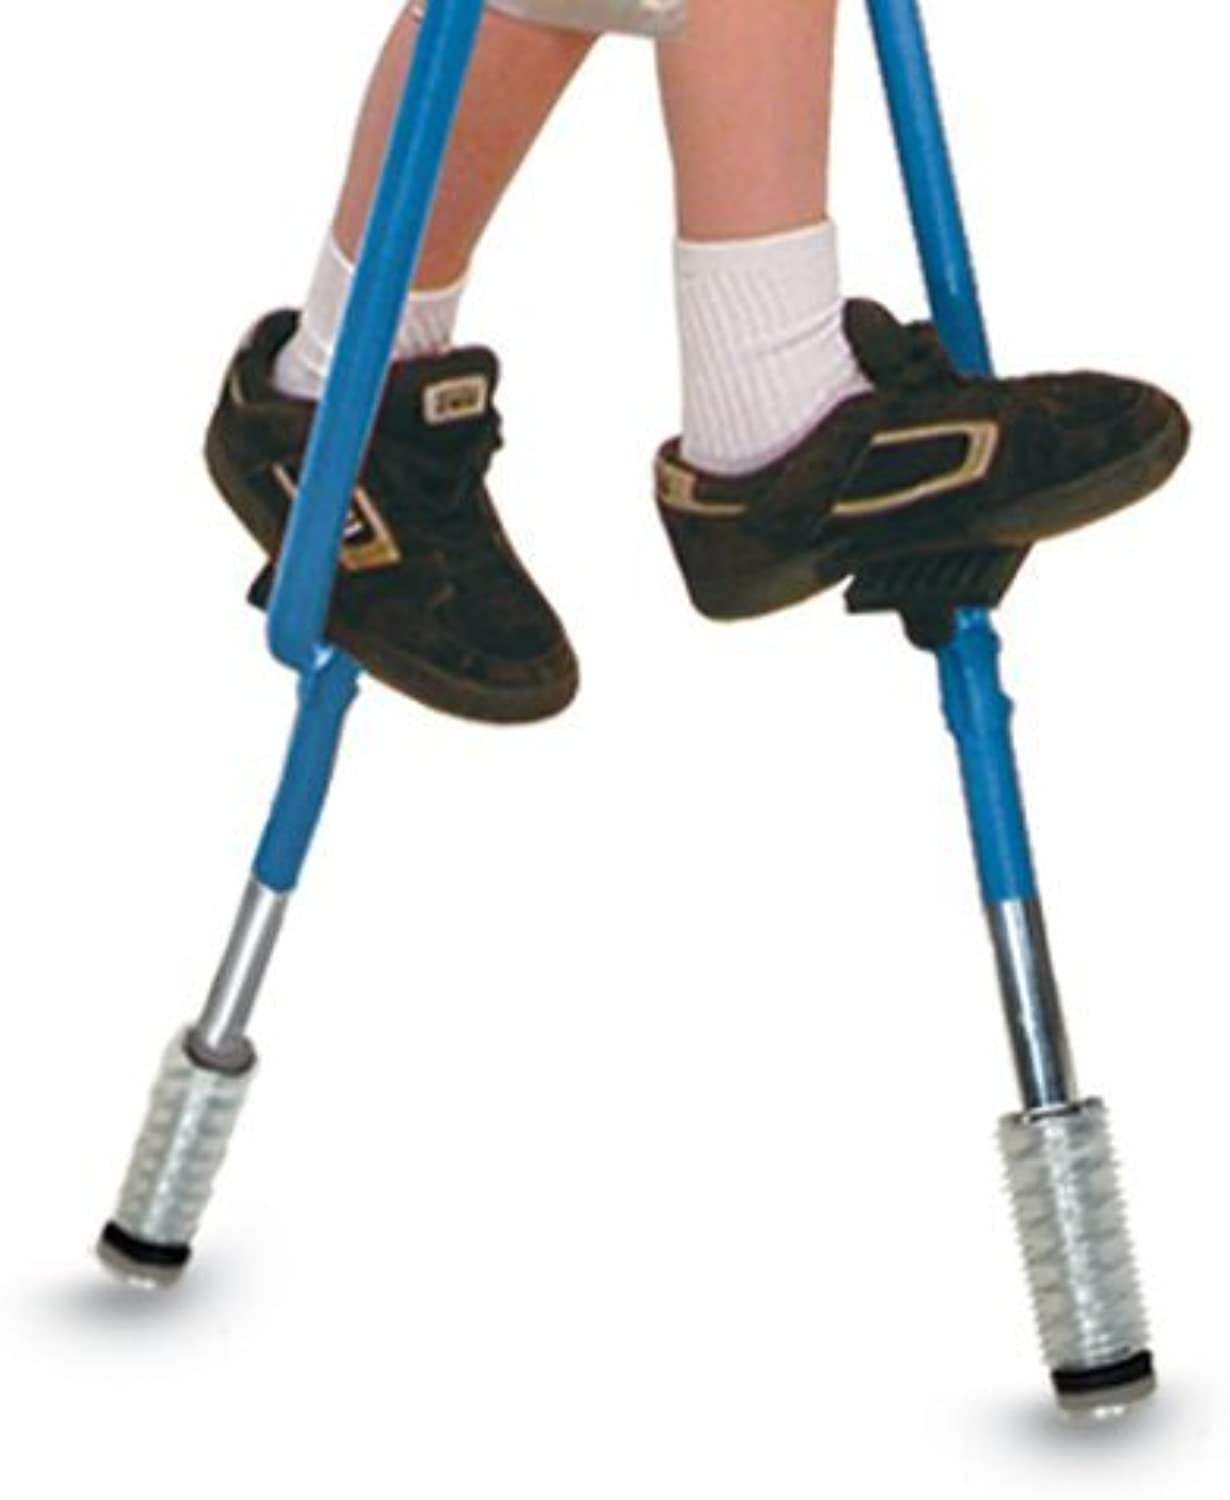 Geospace Xtensionz 4-Piece Extensions Set for Walkaroo Steel Stilts (Includes 2 Styles  Super Shocks & green Lifters)